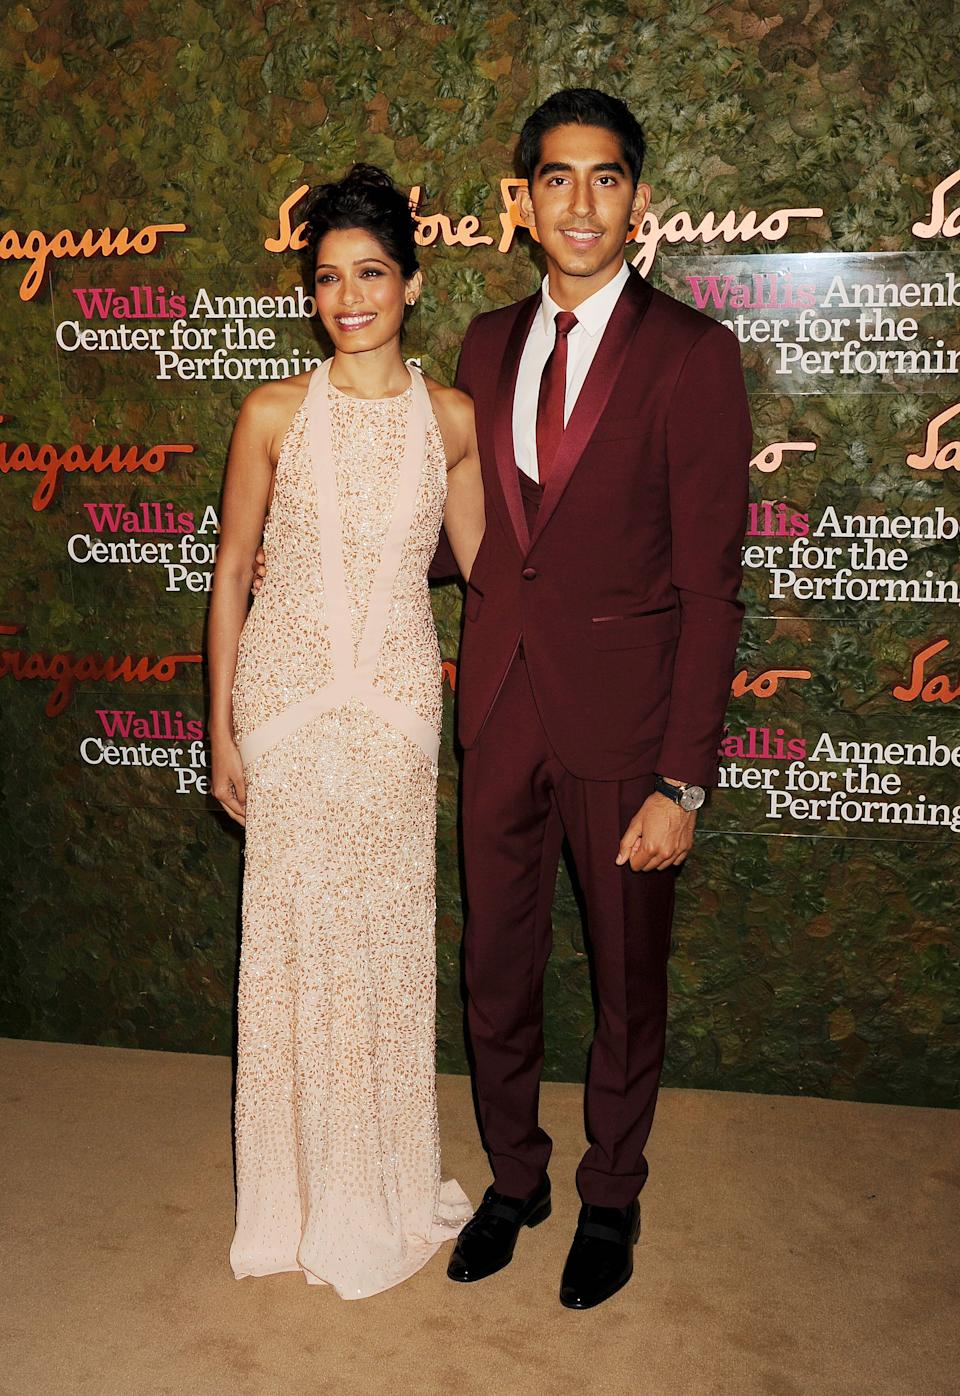 Patel and Pinto at the Wallis Annenberg Center For The Performing Arts Inaugural Gala in Beverly Hills on Oct. 17, 2013.